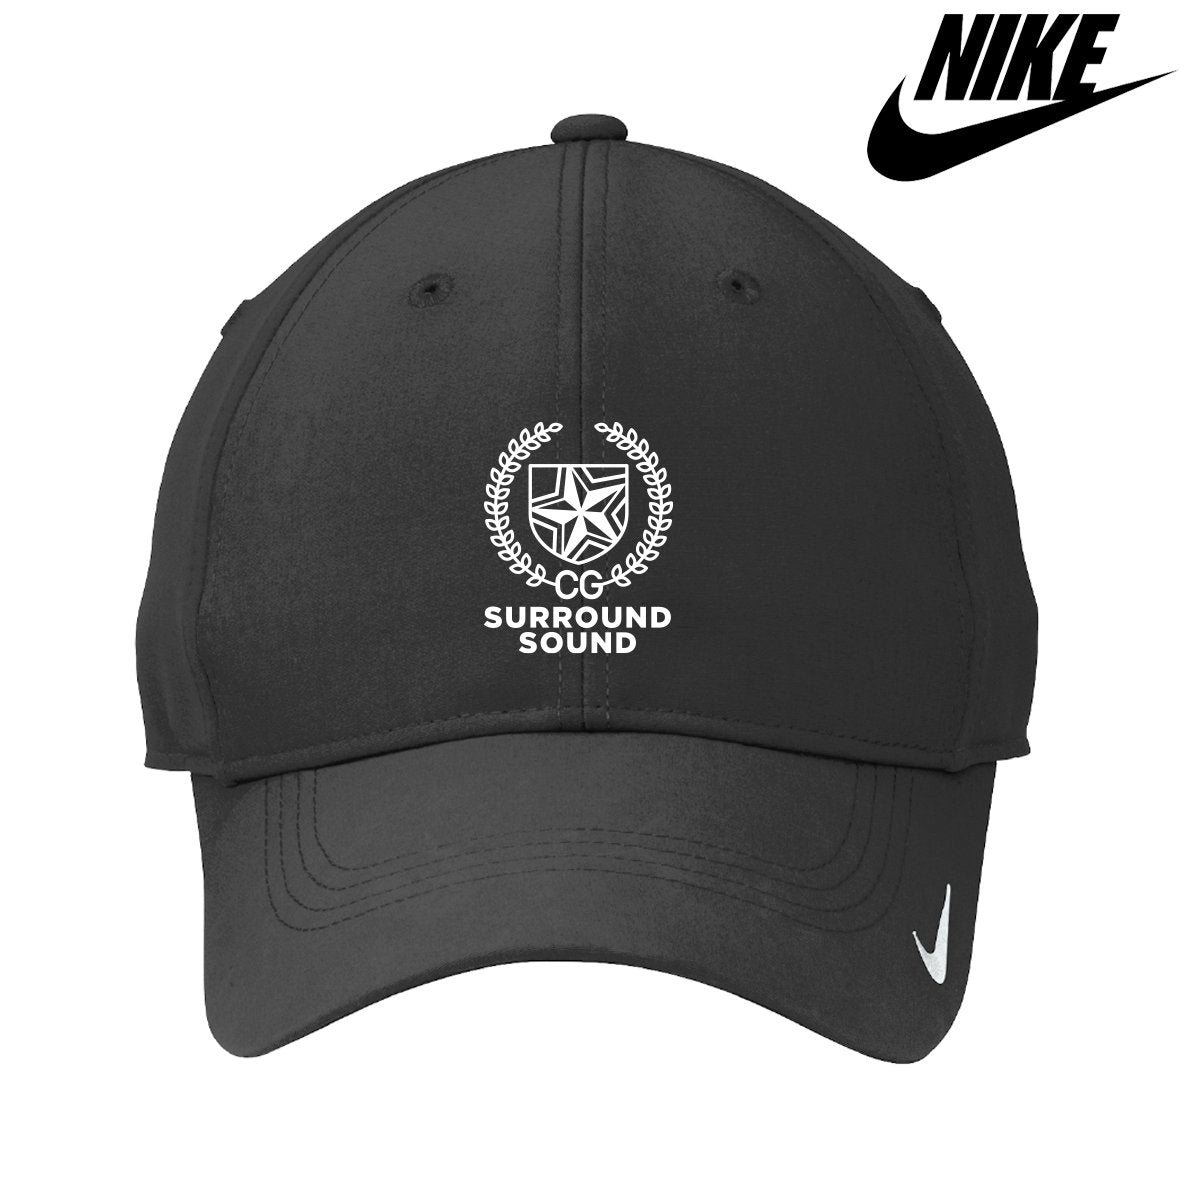 Surround Sound Black Nike Hat